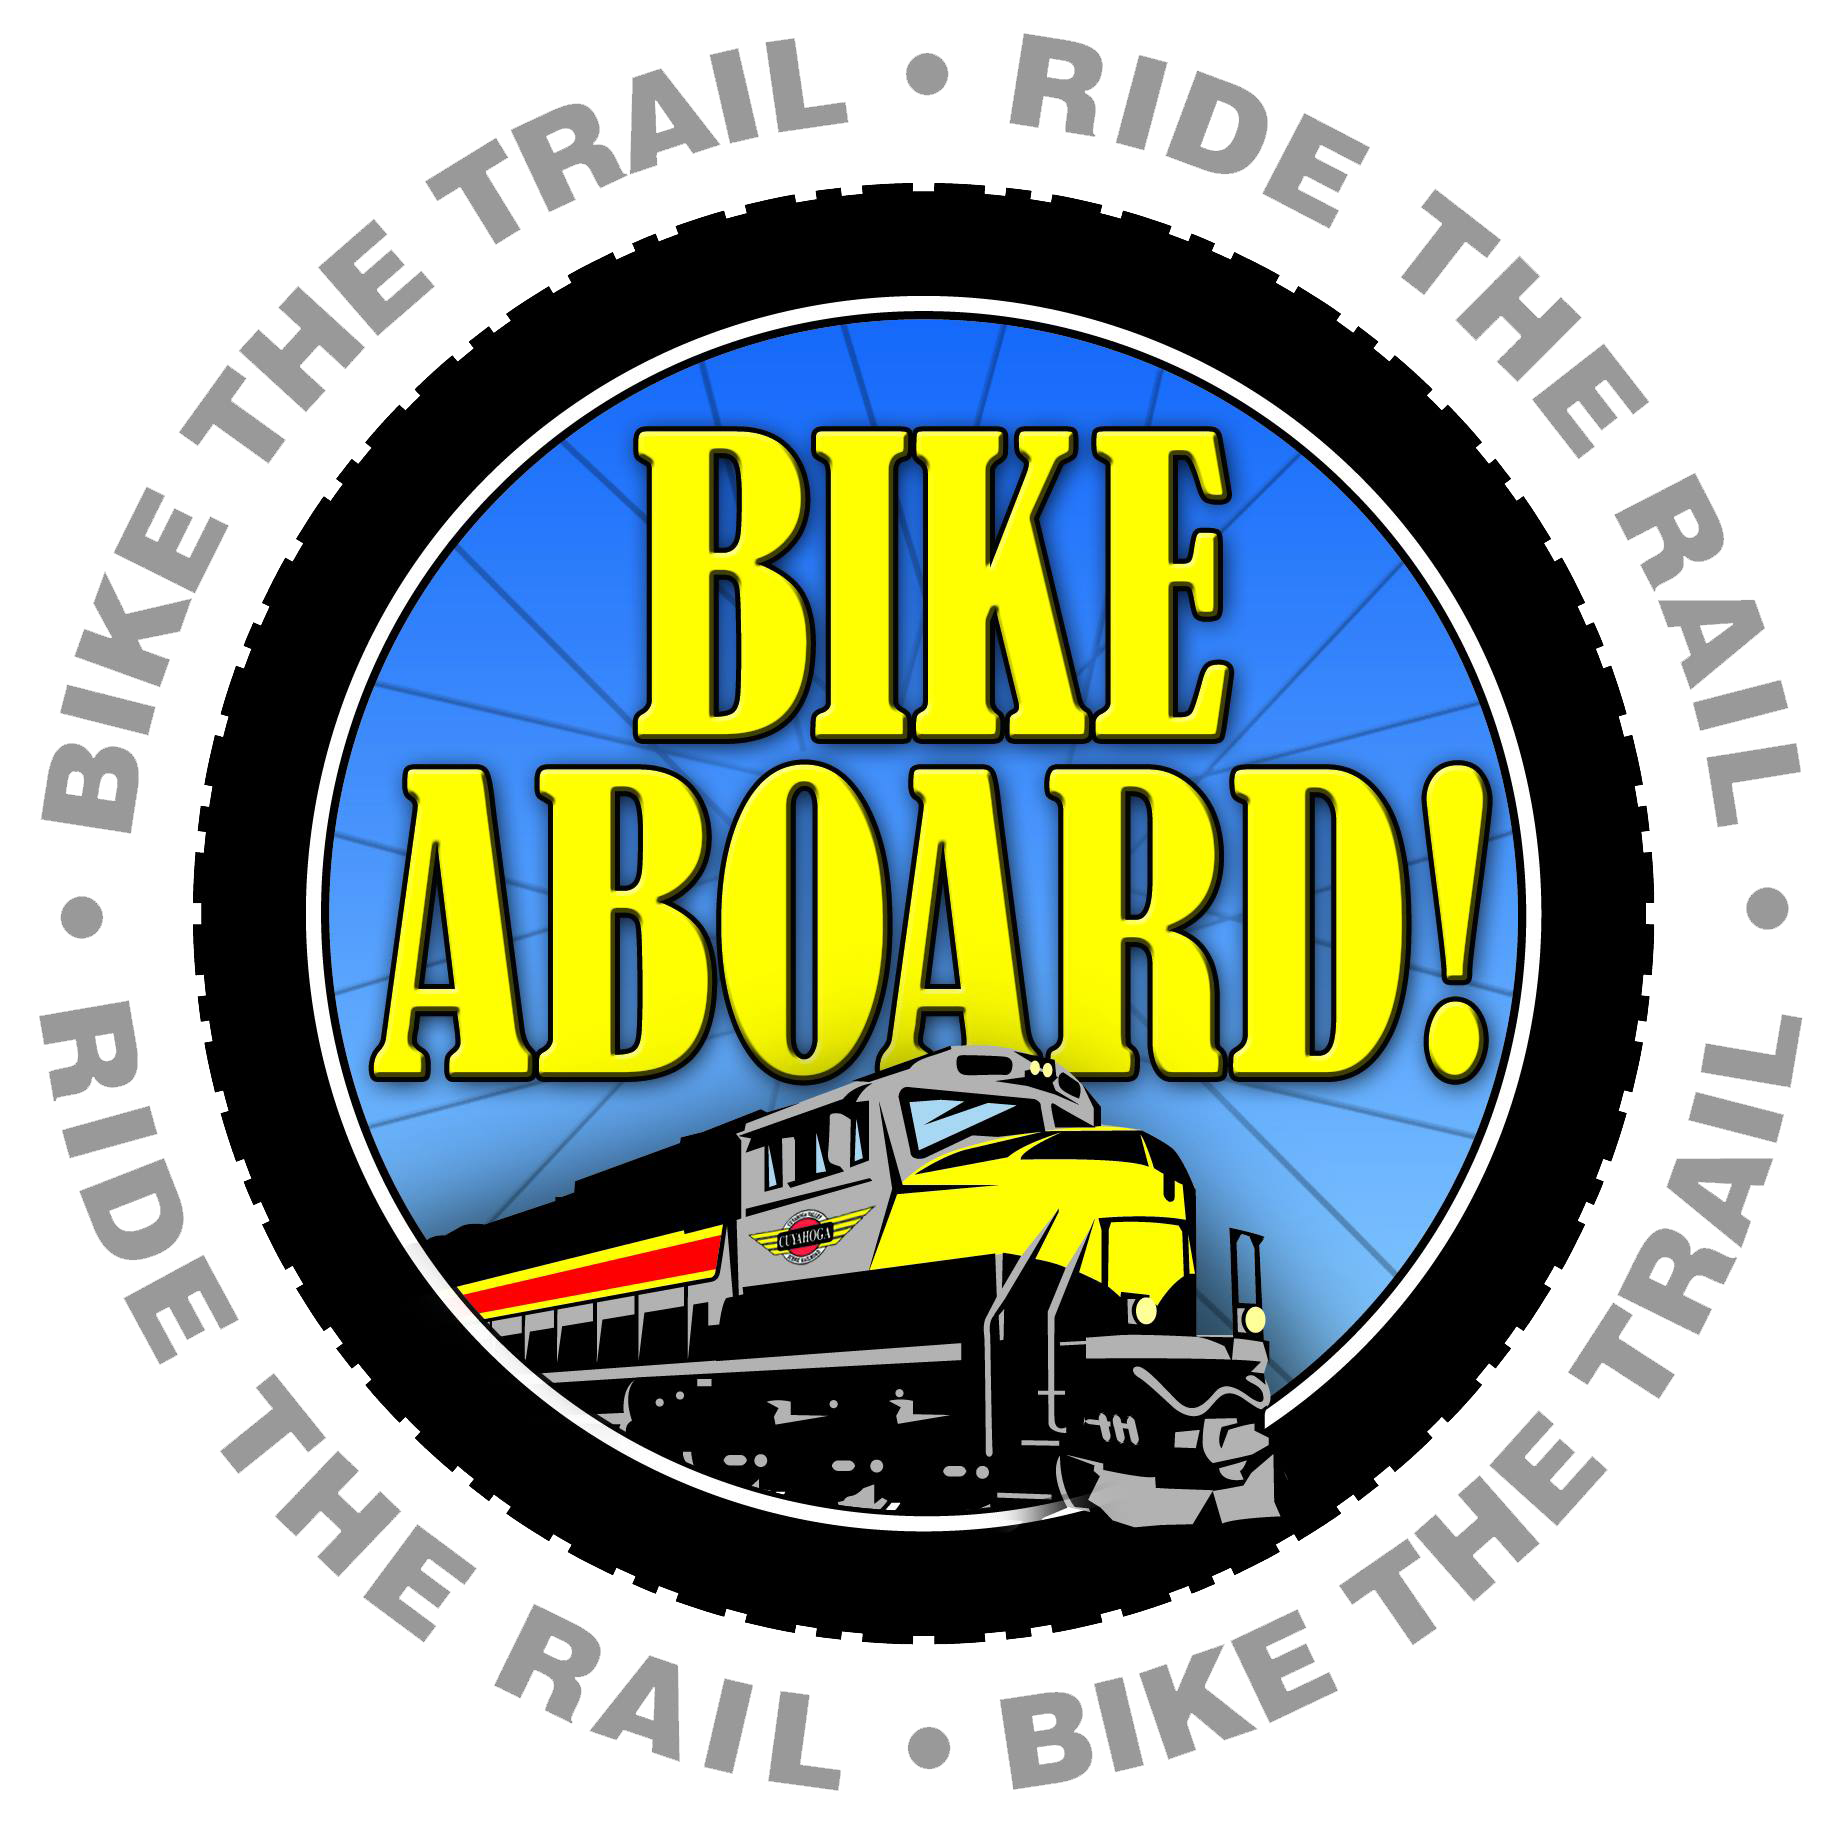 bie aboard bike the trail ride the rail